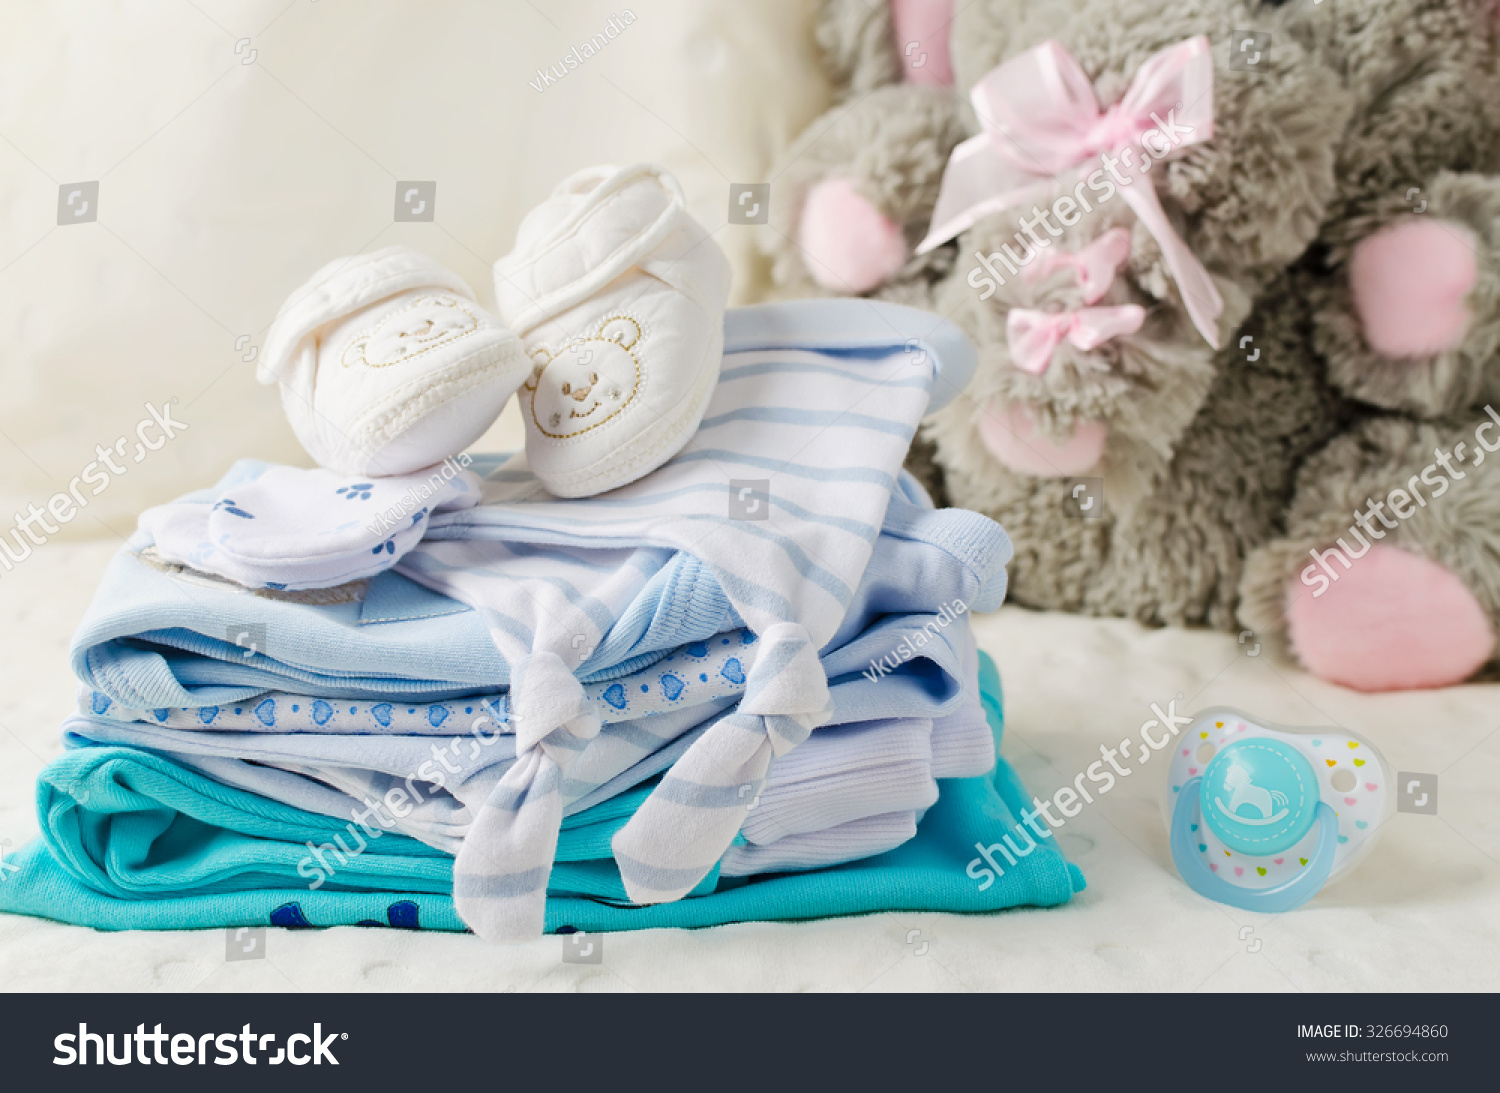 e01301ad0 Baby Clothes Newborn Pastel Colors Stock Photo (Edit Now) 326694860 ...